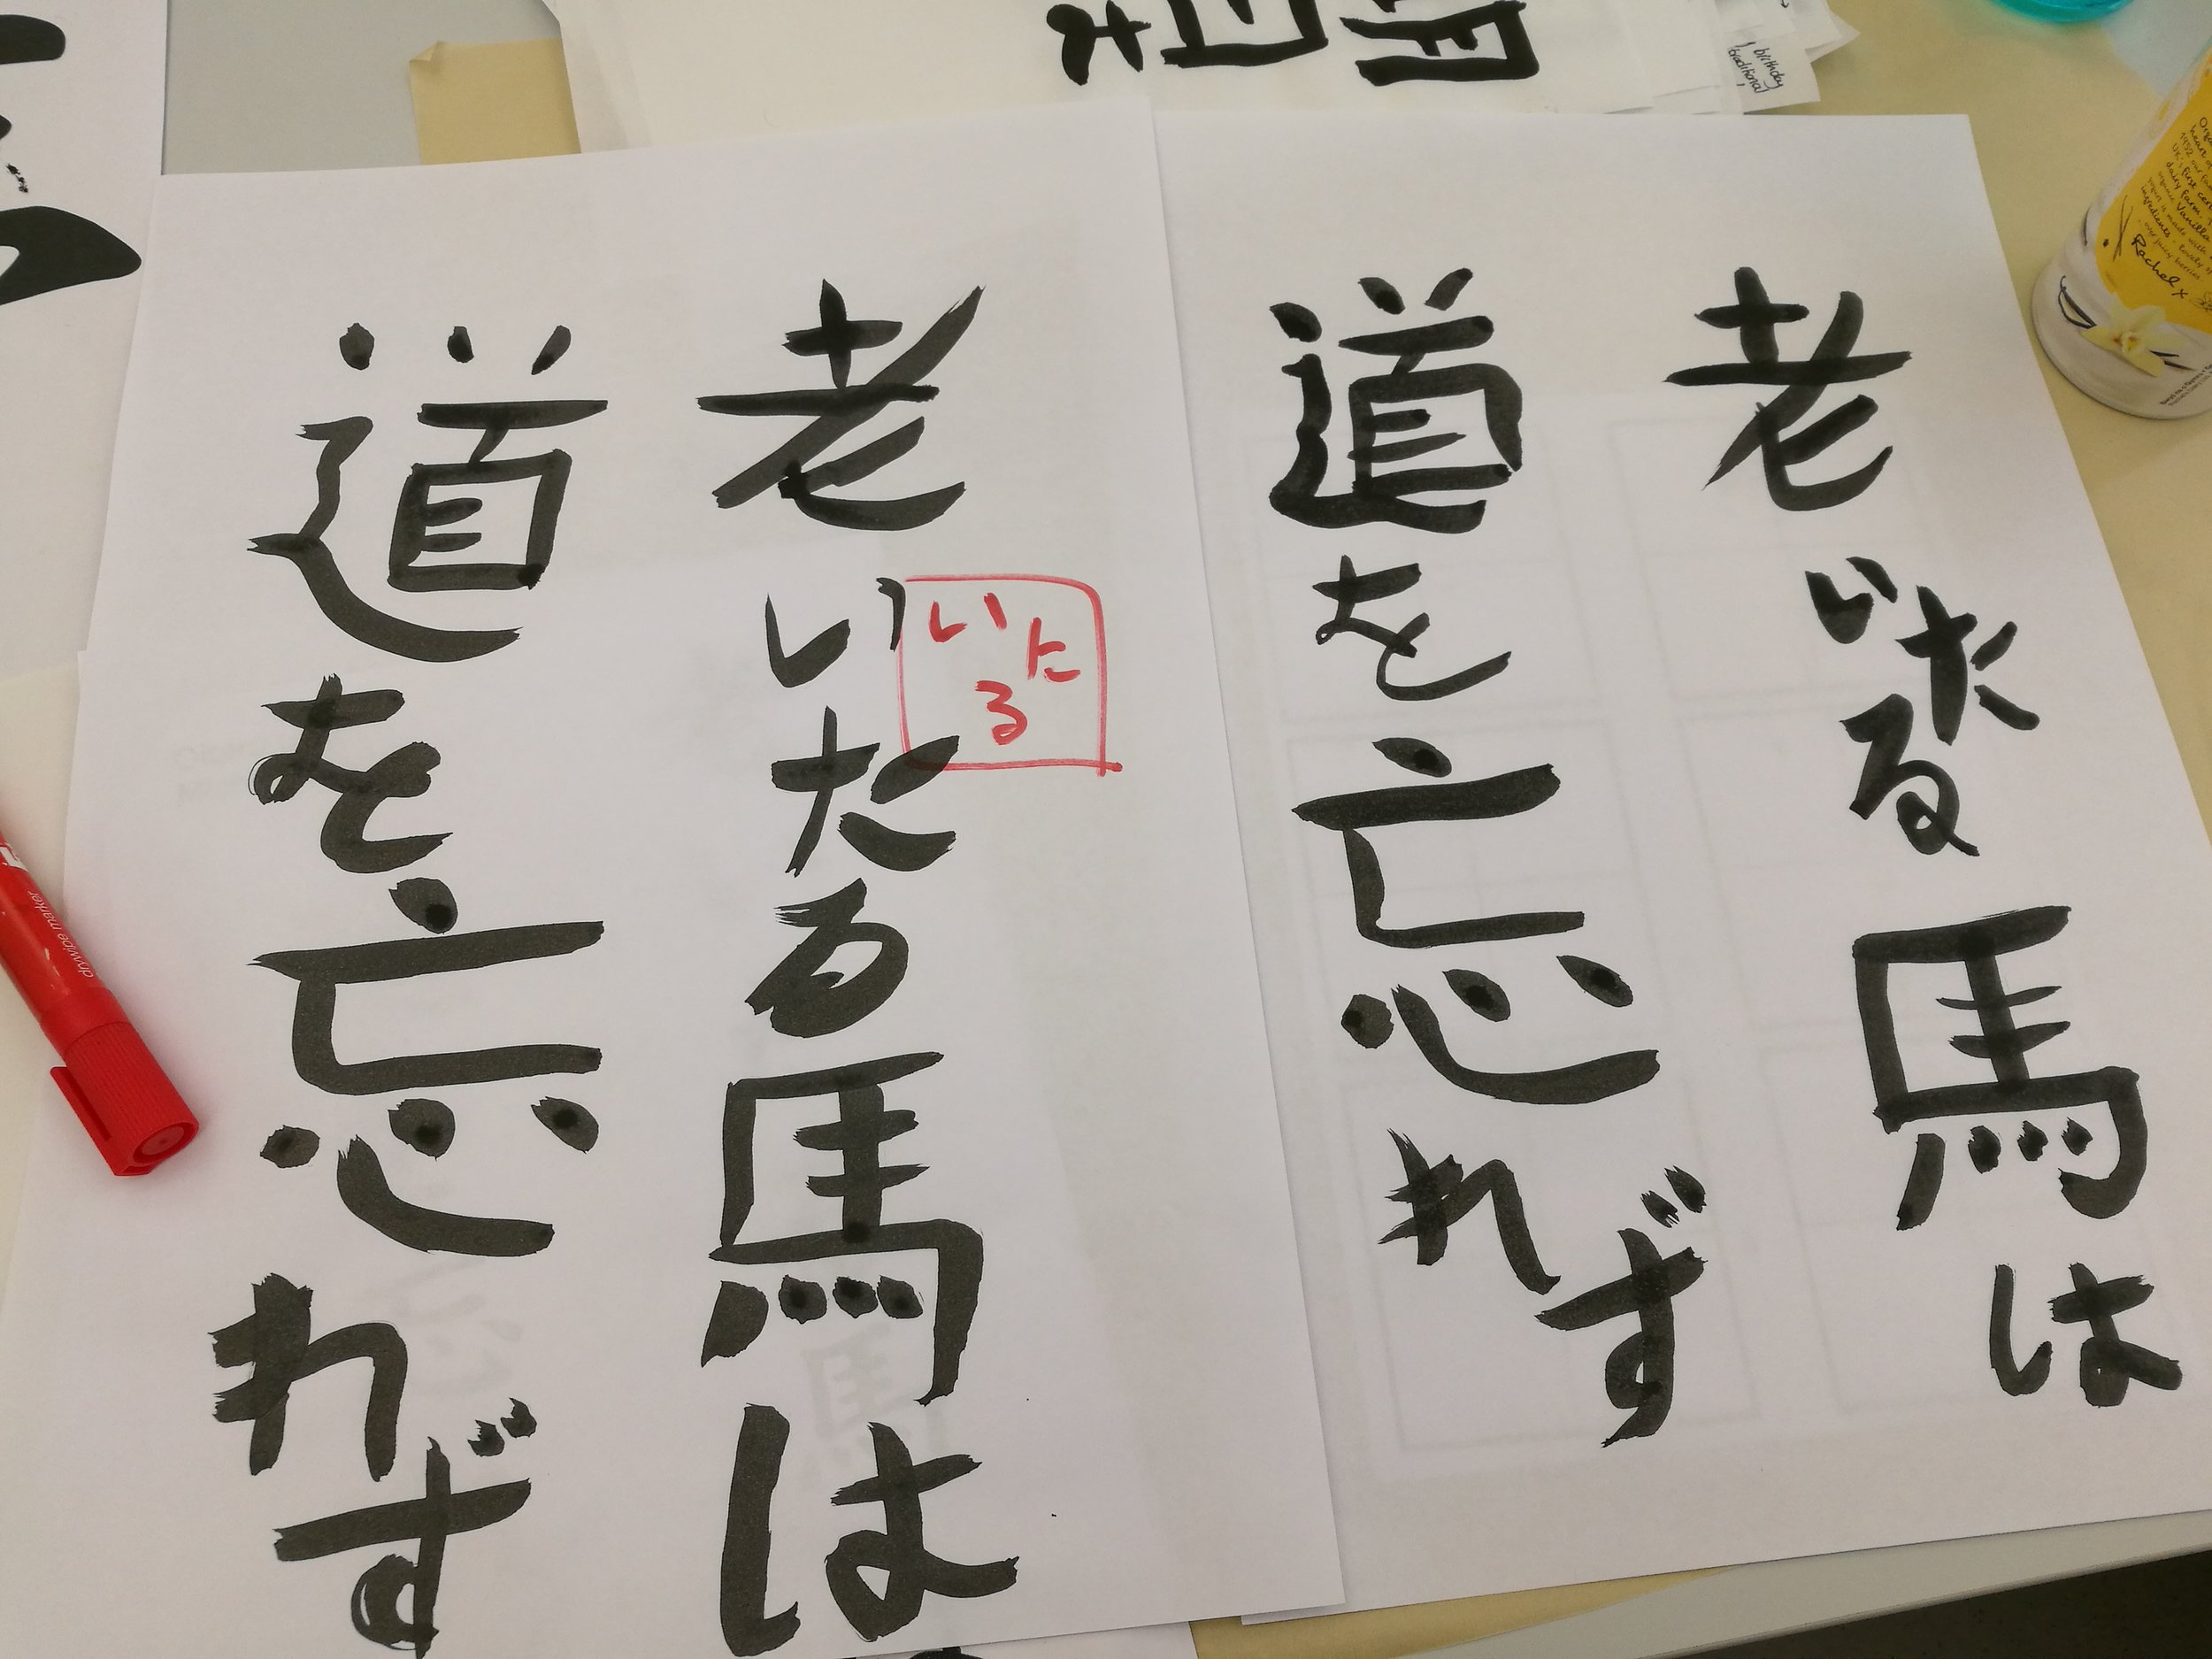 One on the left is my first attempt at this proverb (the one I'm working on in the photo above), the one on the right is the second attempt, with the hiragana script (used for grammar not the look) made smaller to improve the balance of the proverb.